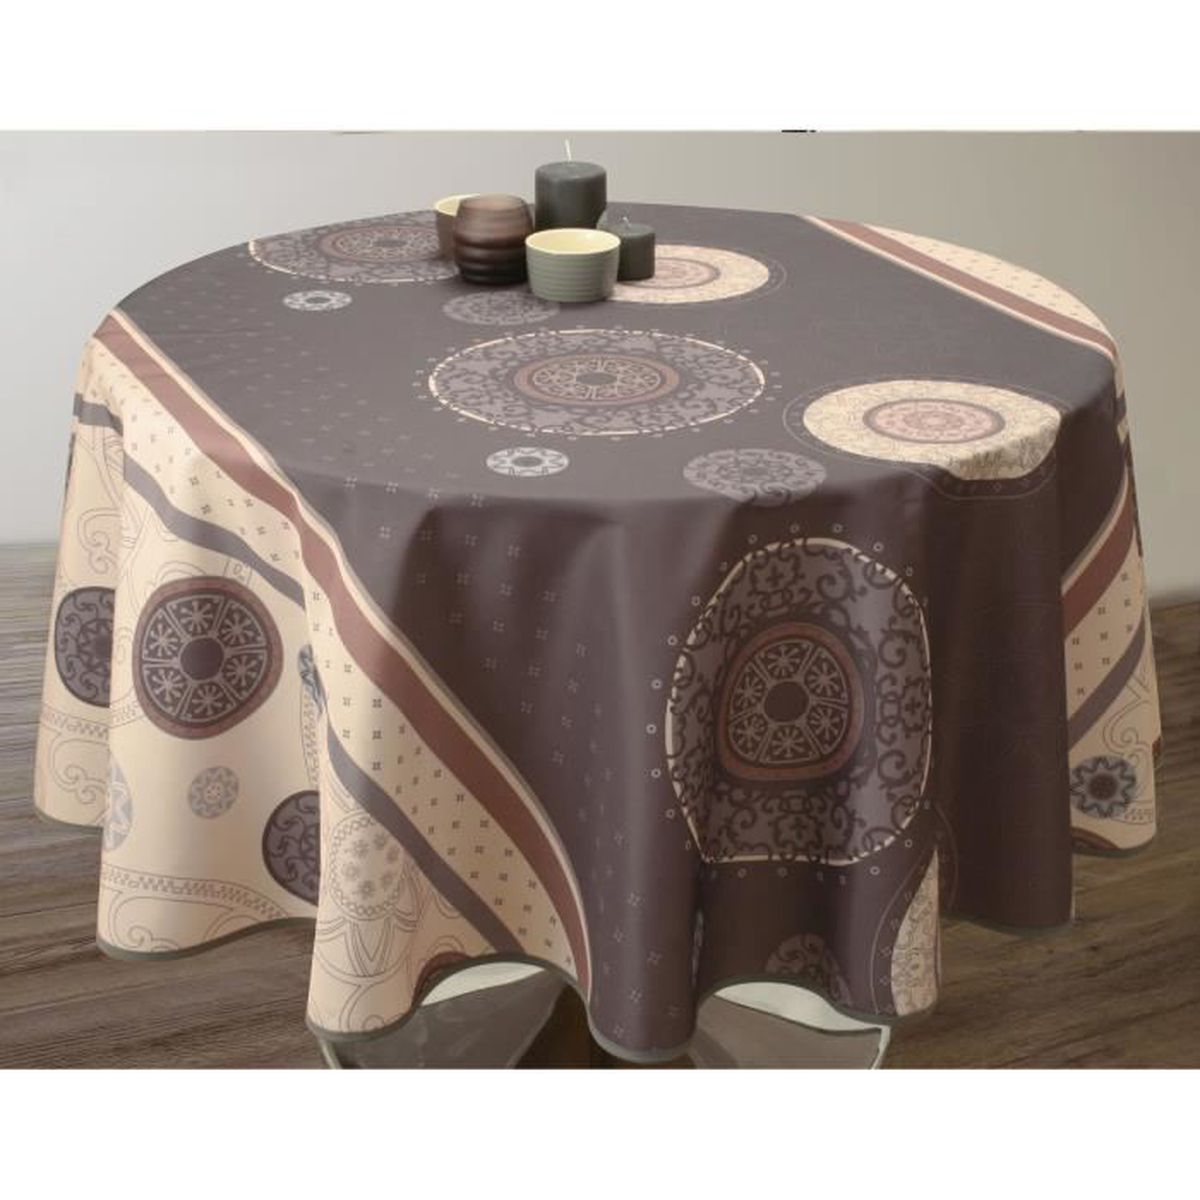 nappe anti taches ronde 160 cm tzigane gris achat vente nappe de table cdiscount. Black Bedroom Furniture Sets. Home Design Ideas